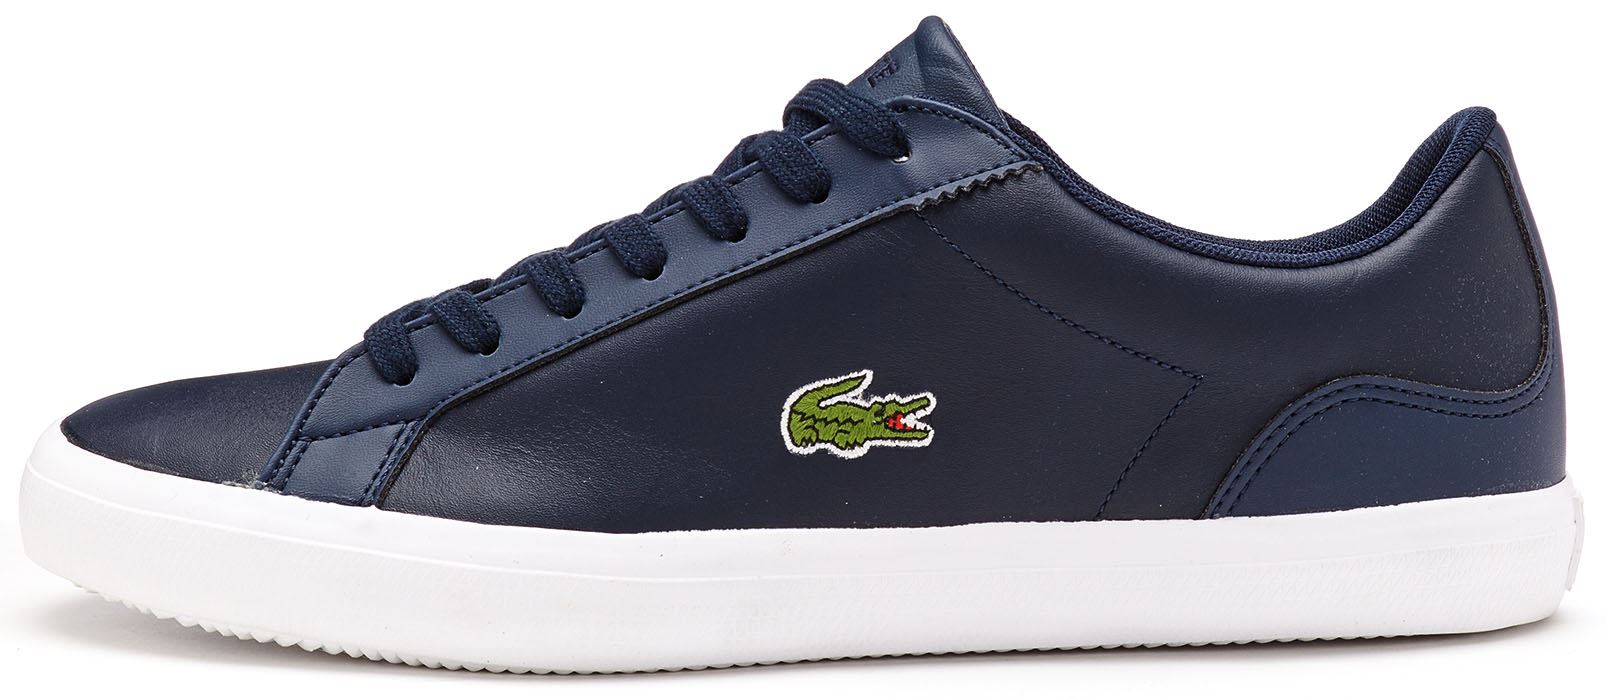 95b8a47ff8 Description This street-smart vulcanised court comes in a full leather  upper for the SS17 season. The clean lines and chunky profile are enhanced  by the ...